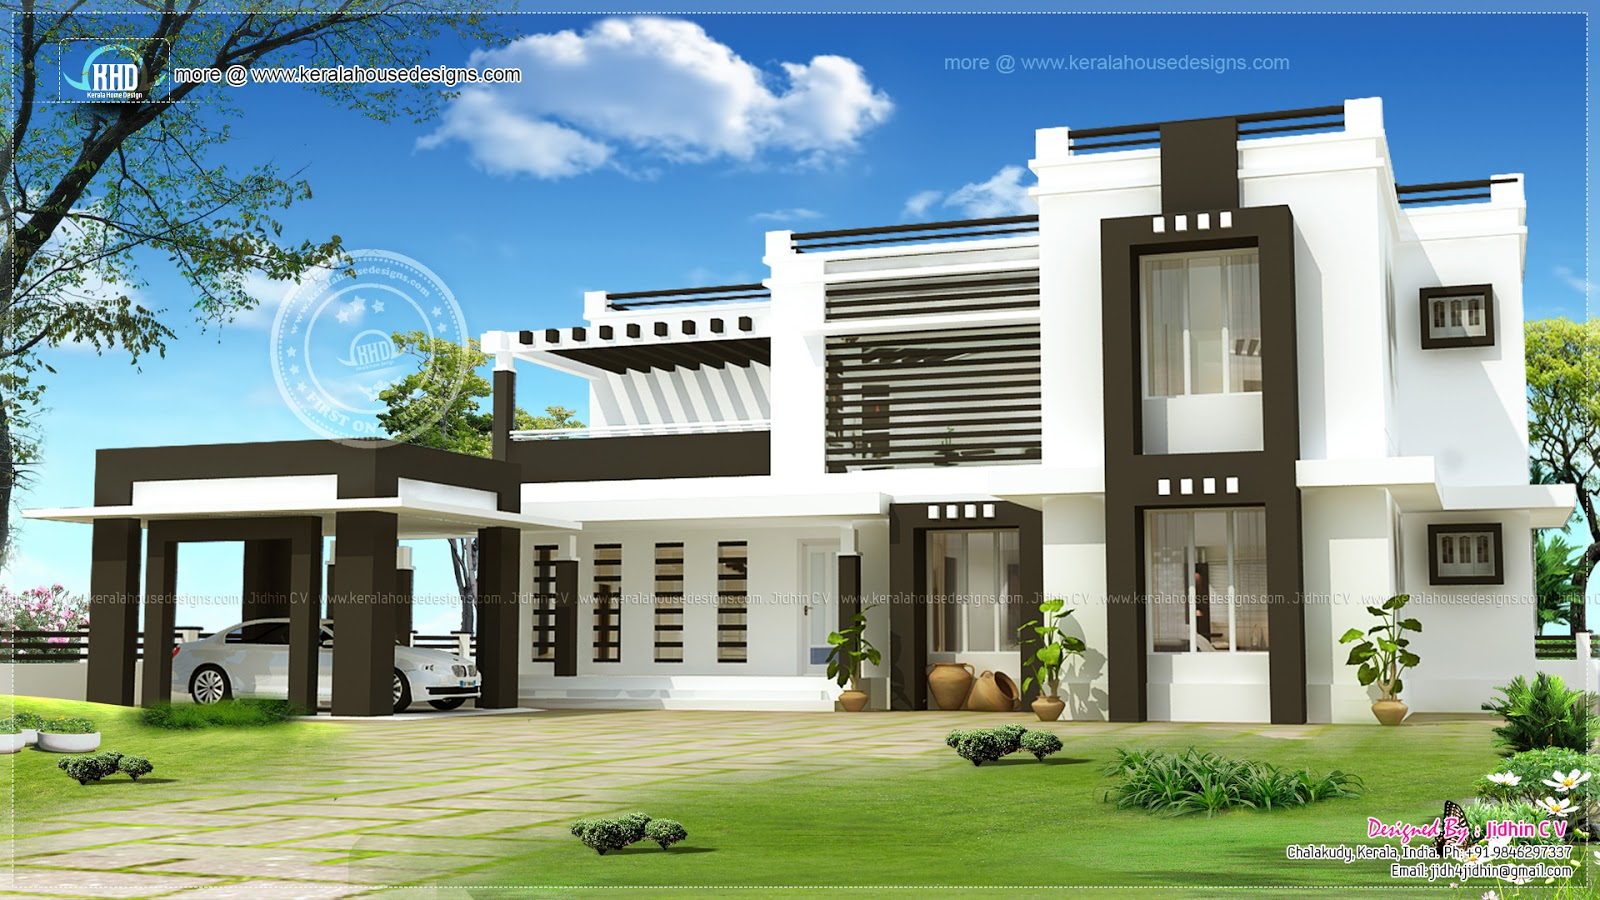 3400 Sq Ft Flat Roof House Exterior Kerala Home Design And Floor Plans